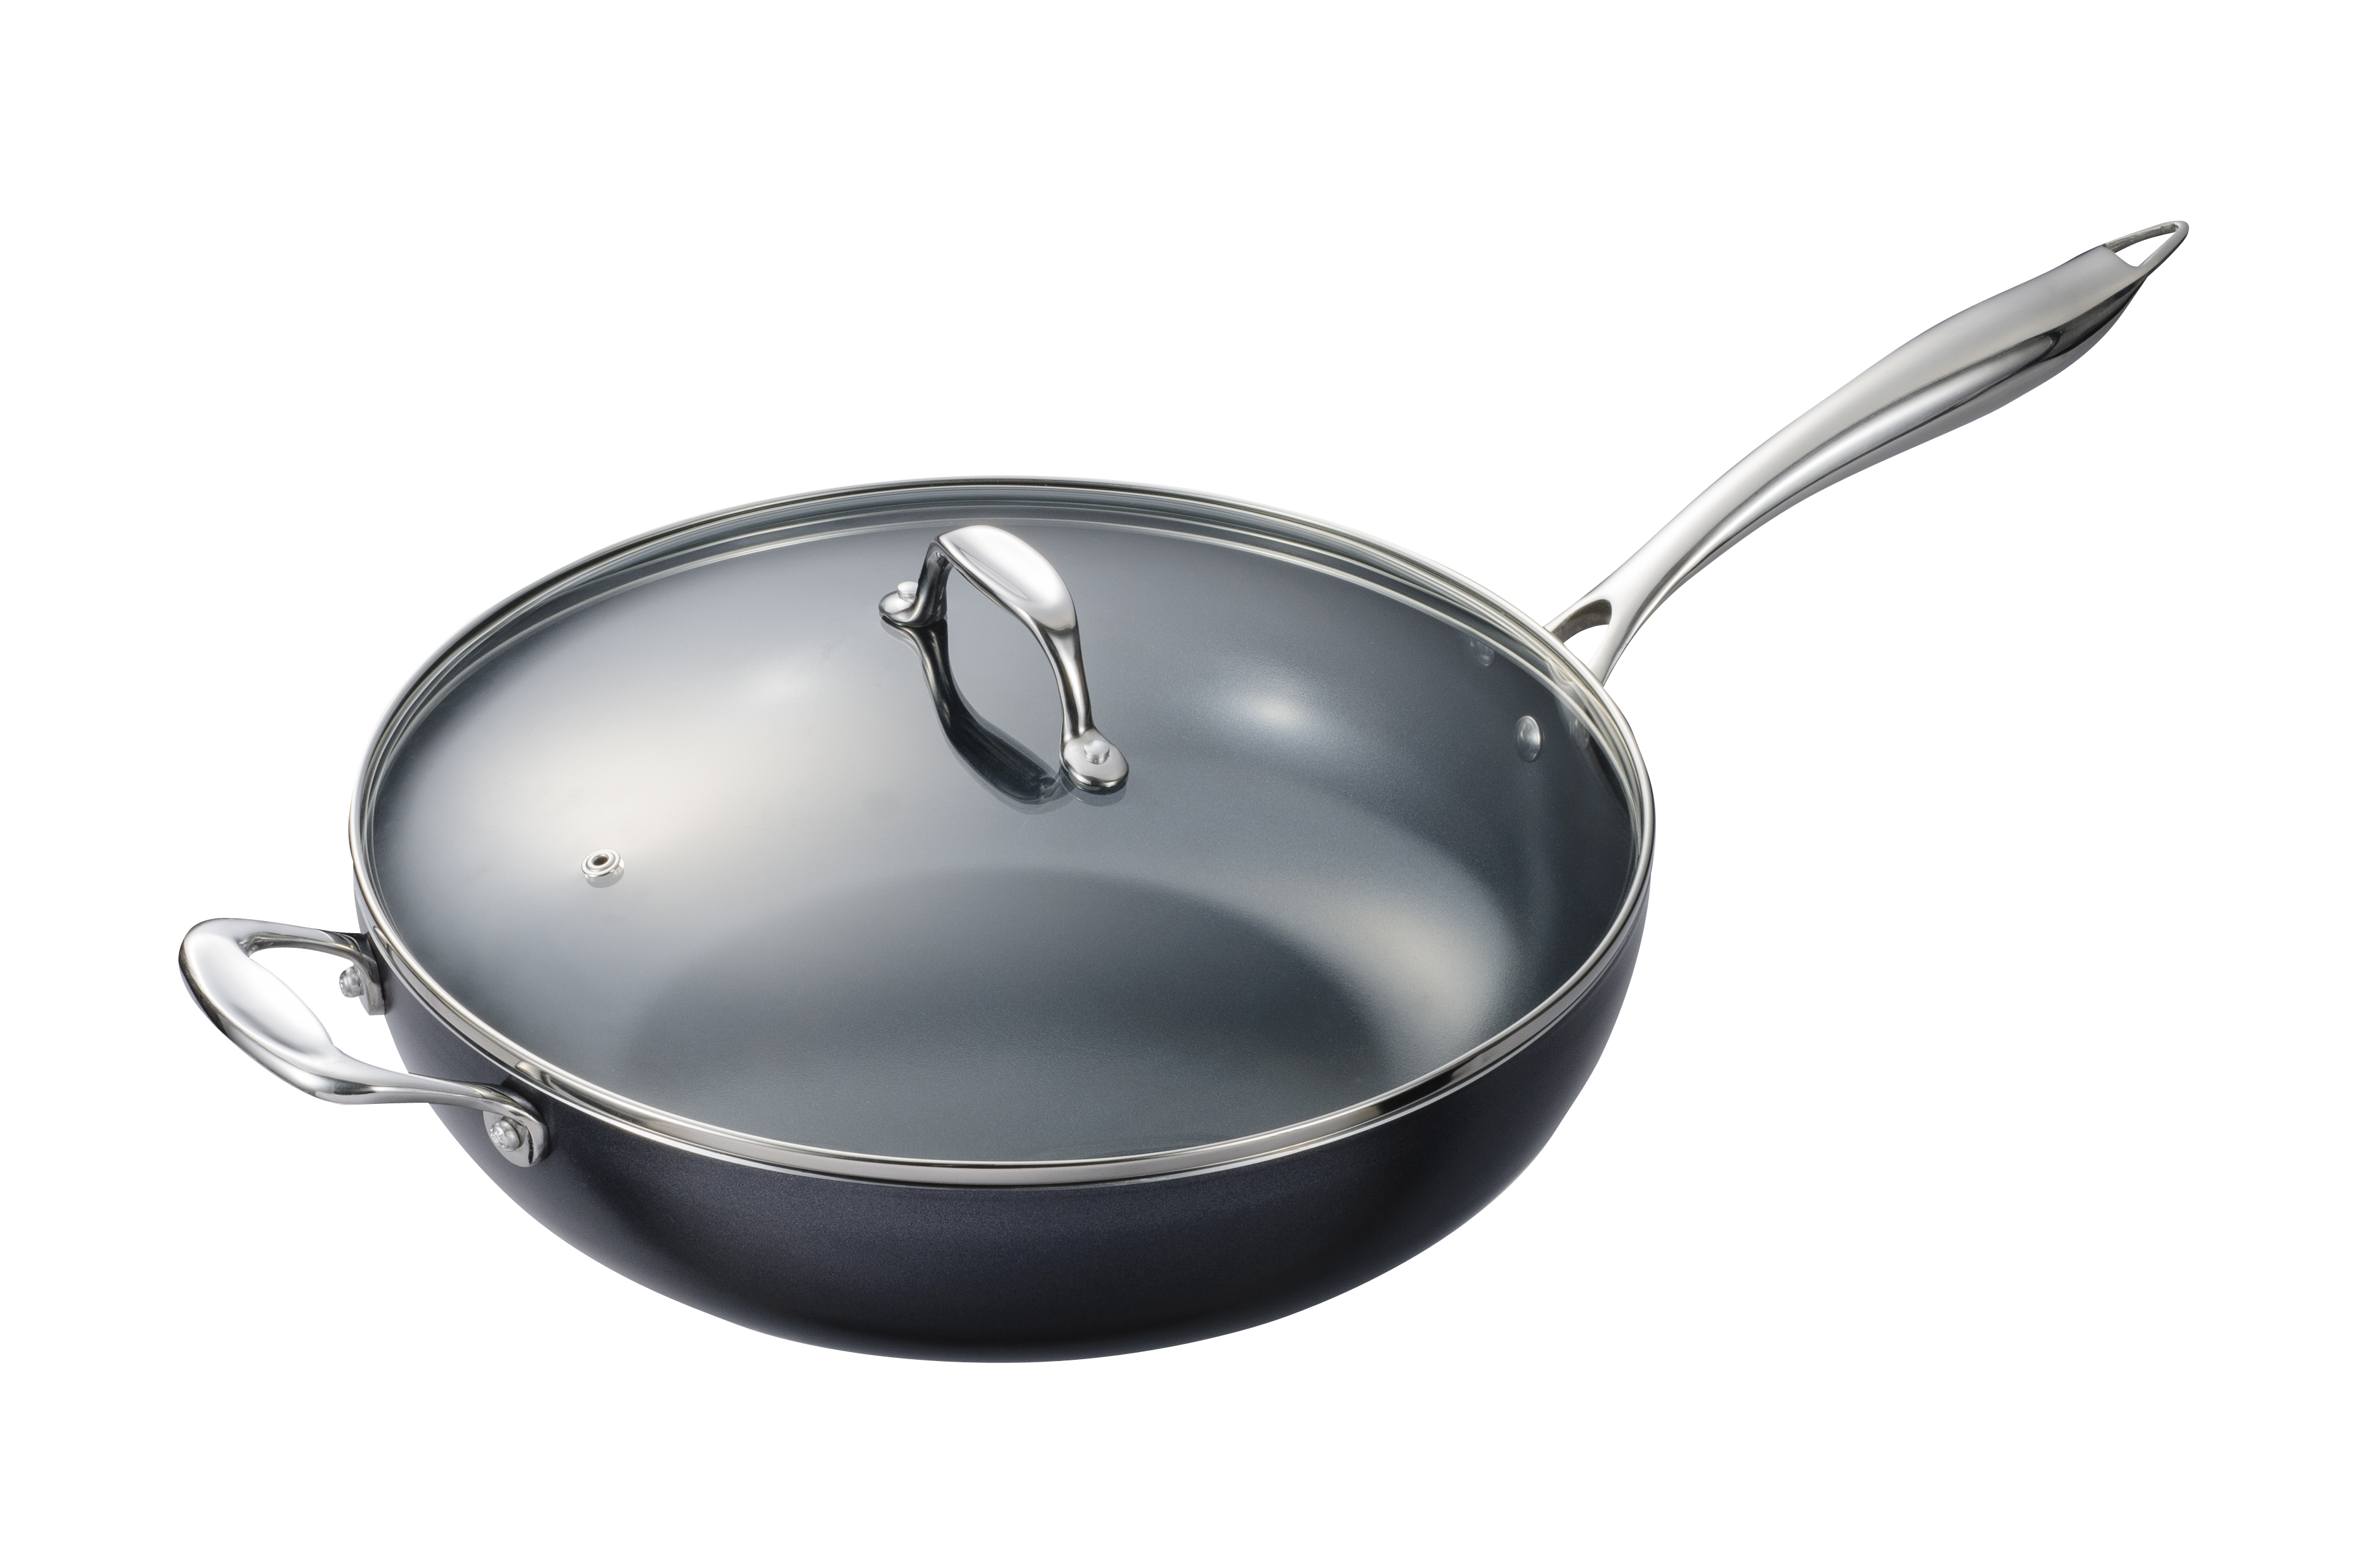 Kyocera Versatile Nonstick Wok With Lid Kitchenware News